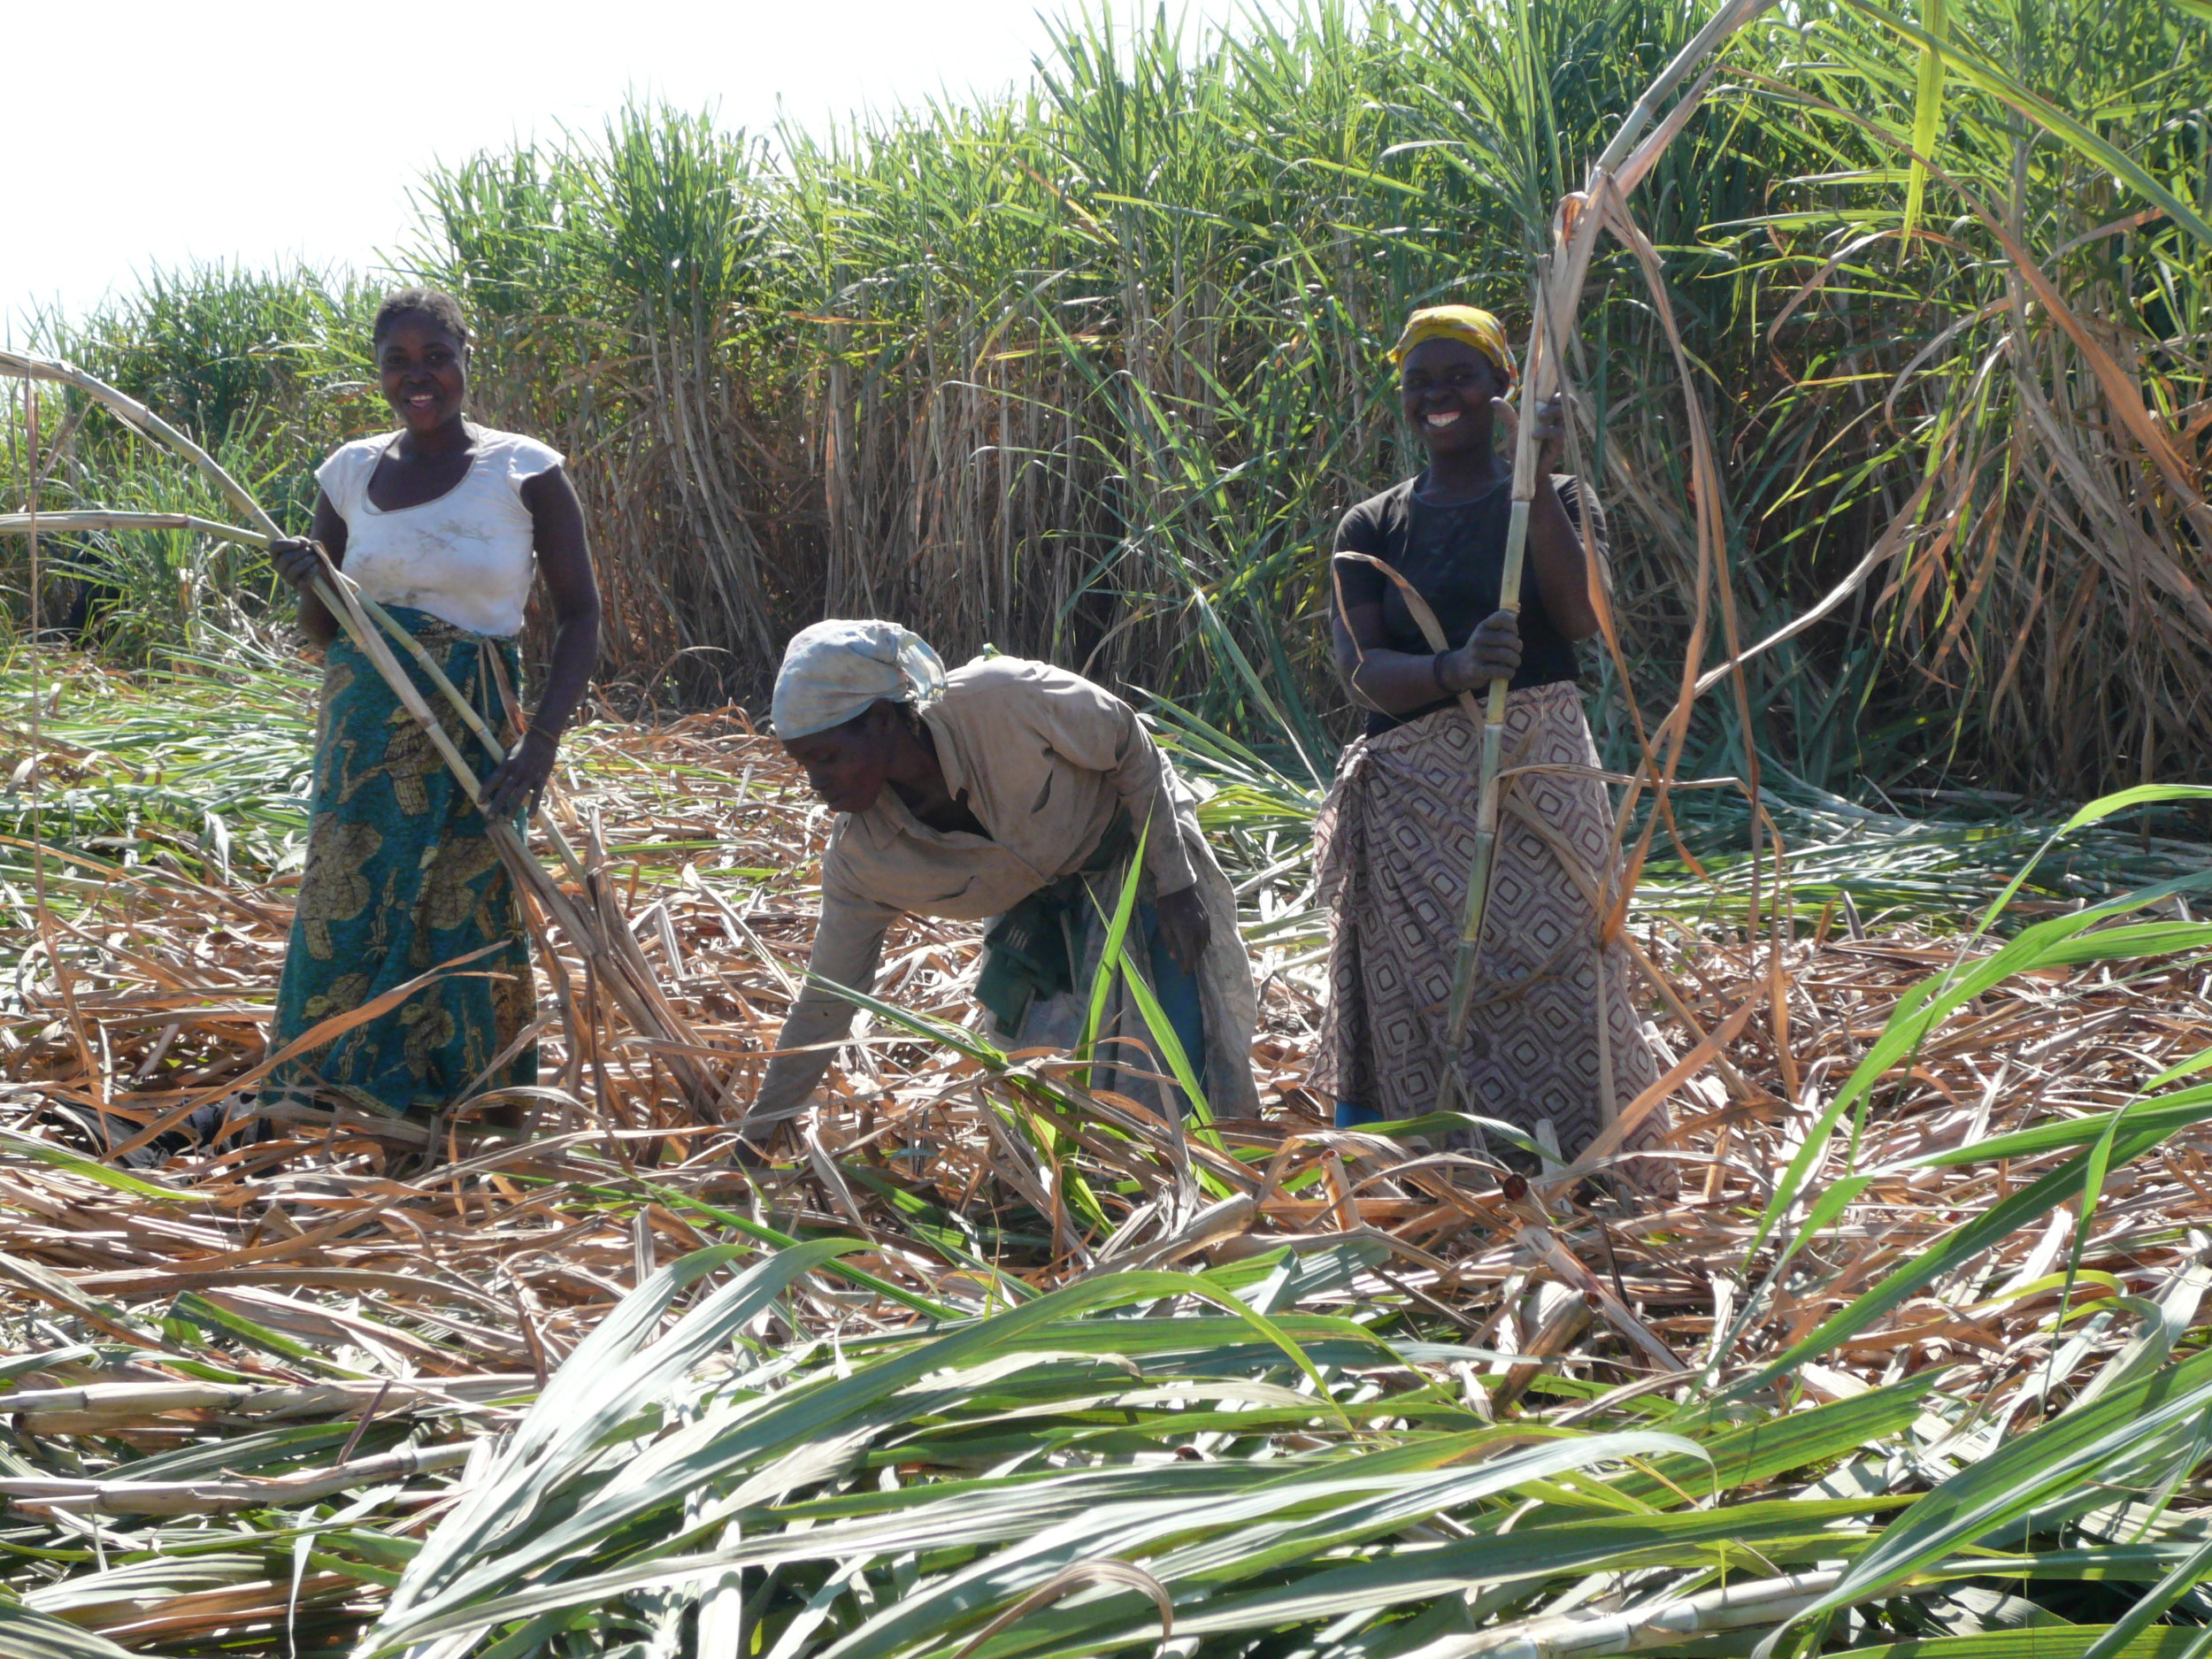 Mozambican workers preparing seed cane